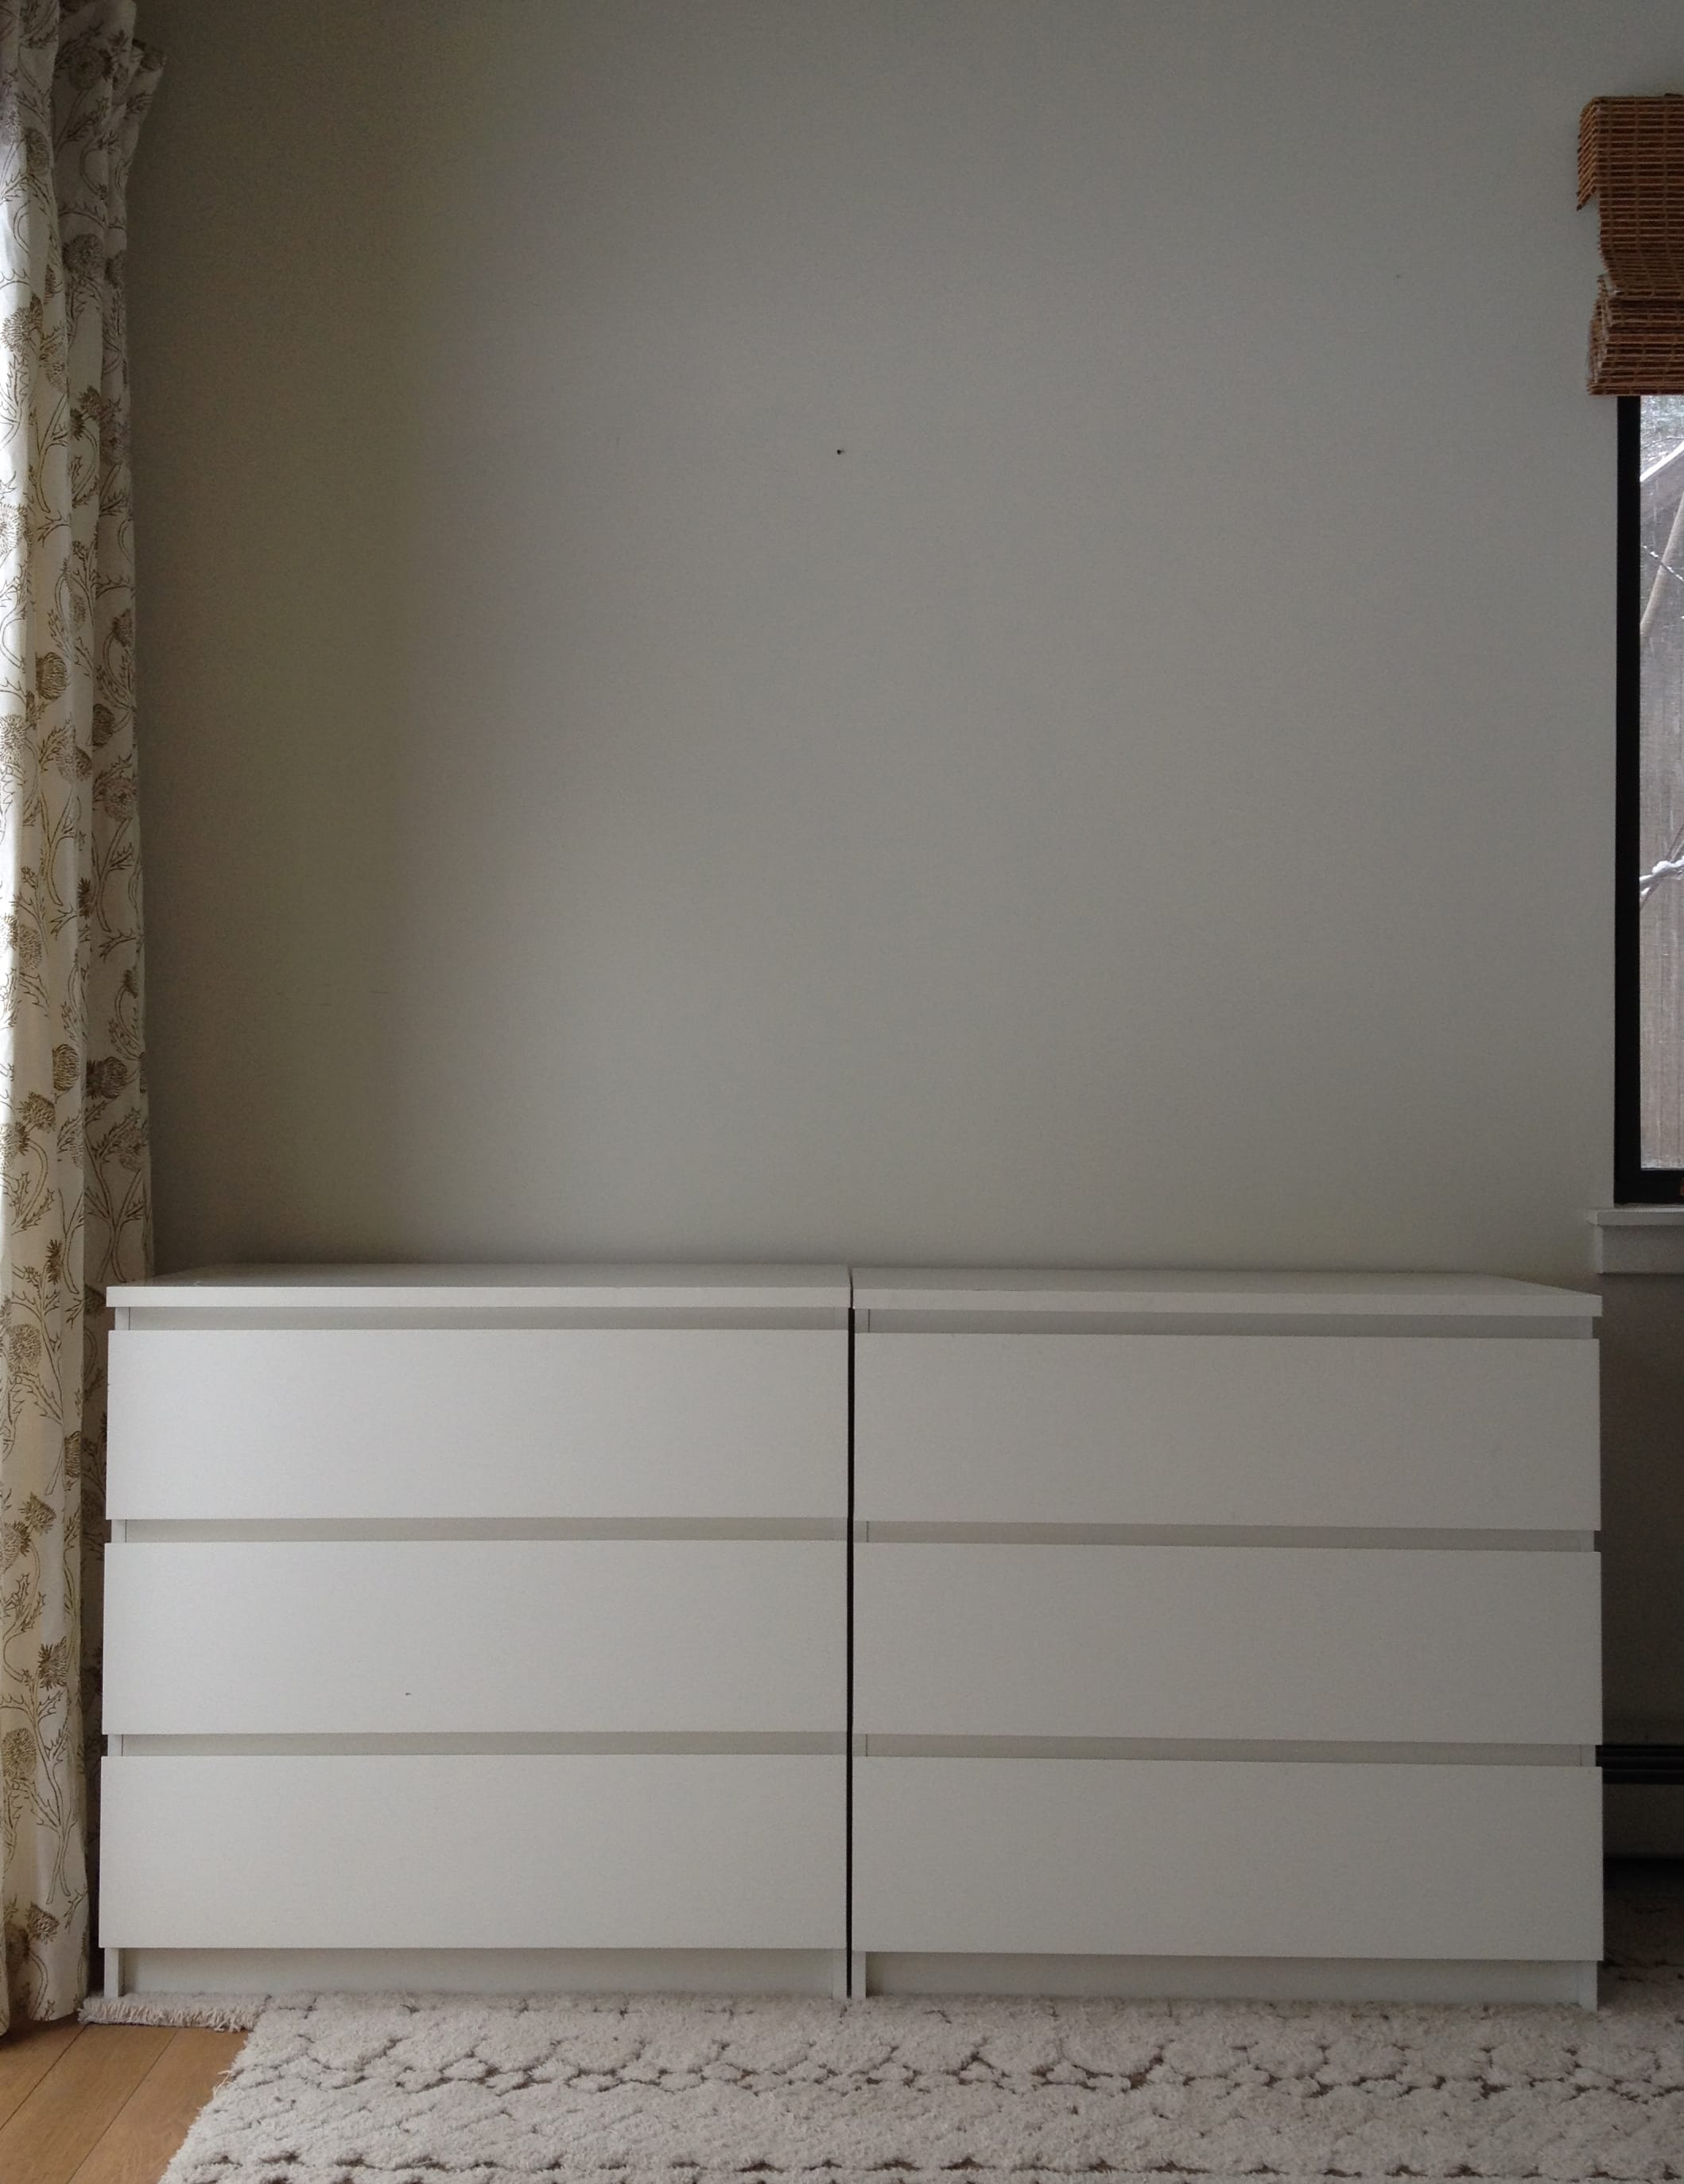 #3E342A Ikea Malm Dresser White Trend Dressers Designs 2118x2747 Jpeg with 2118x2747 px of Most Effective Malm White Dresser 27472118 wallpaper @ avoidforclosure.info